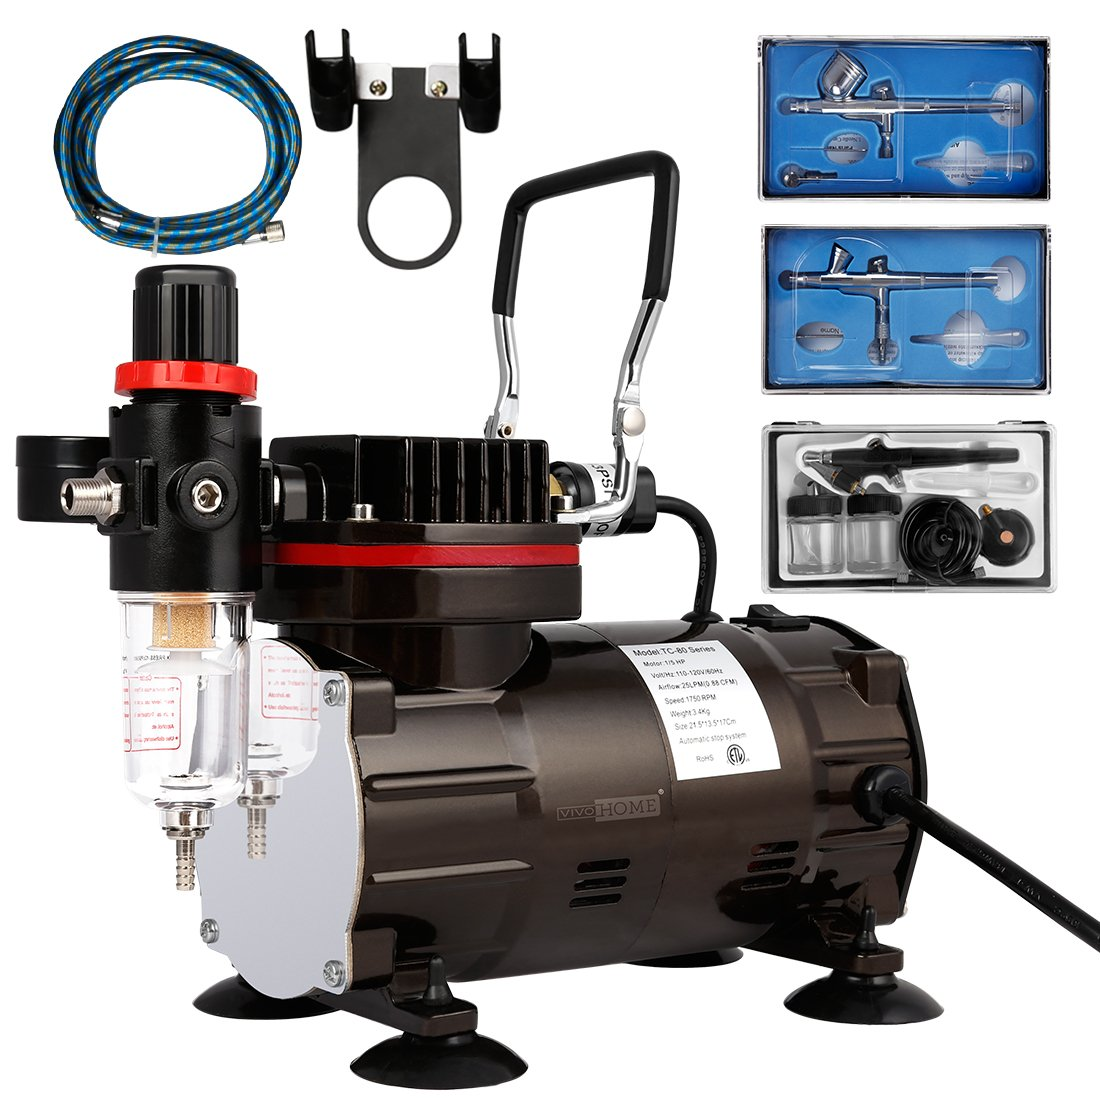 VIVOHOME 110-120V Professional Airbrushing Paint System with 1/5 HP Air Compressor and 3 Airbrush Kits ETL Certified